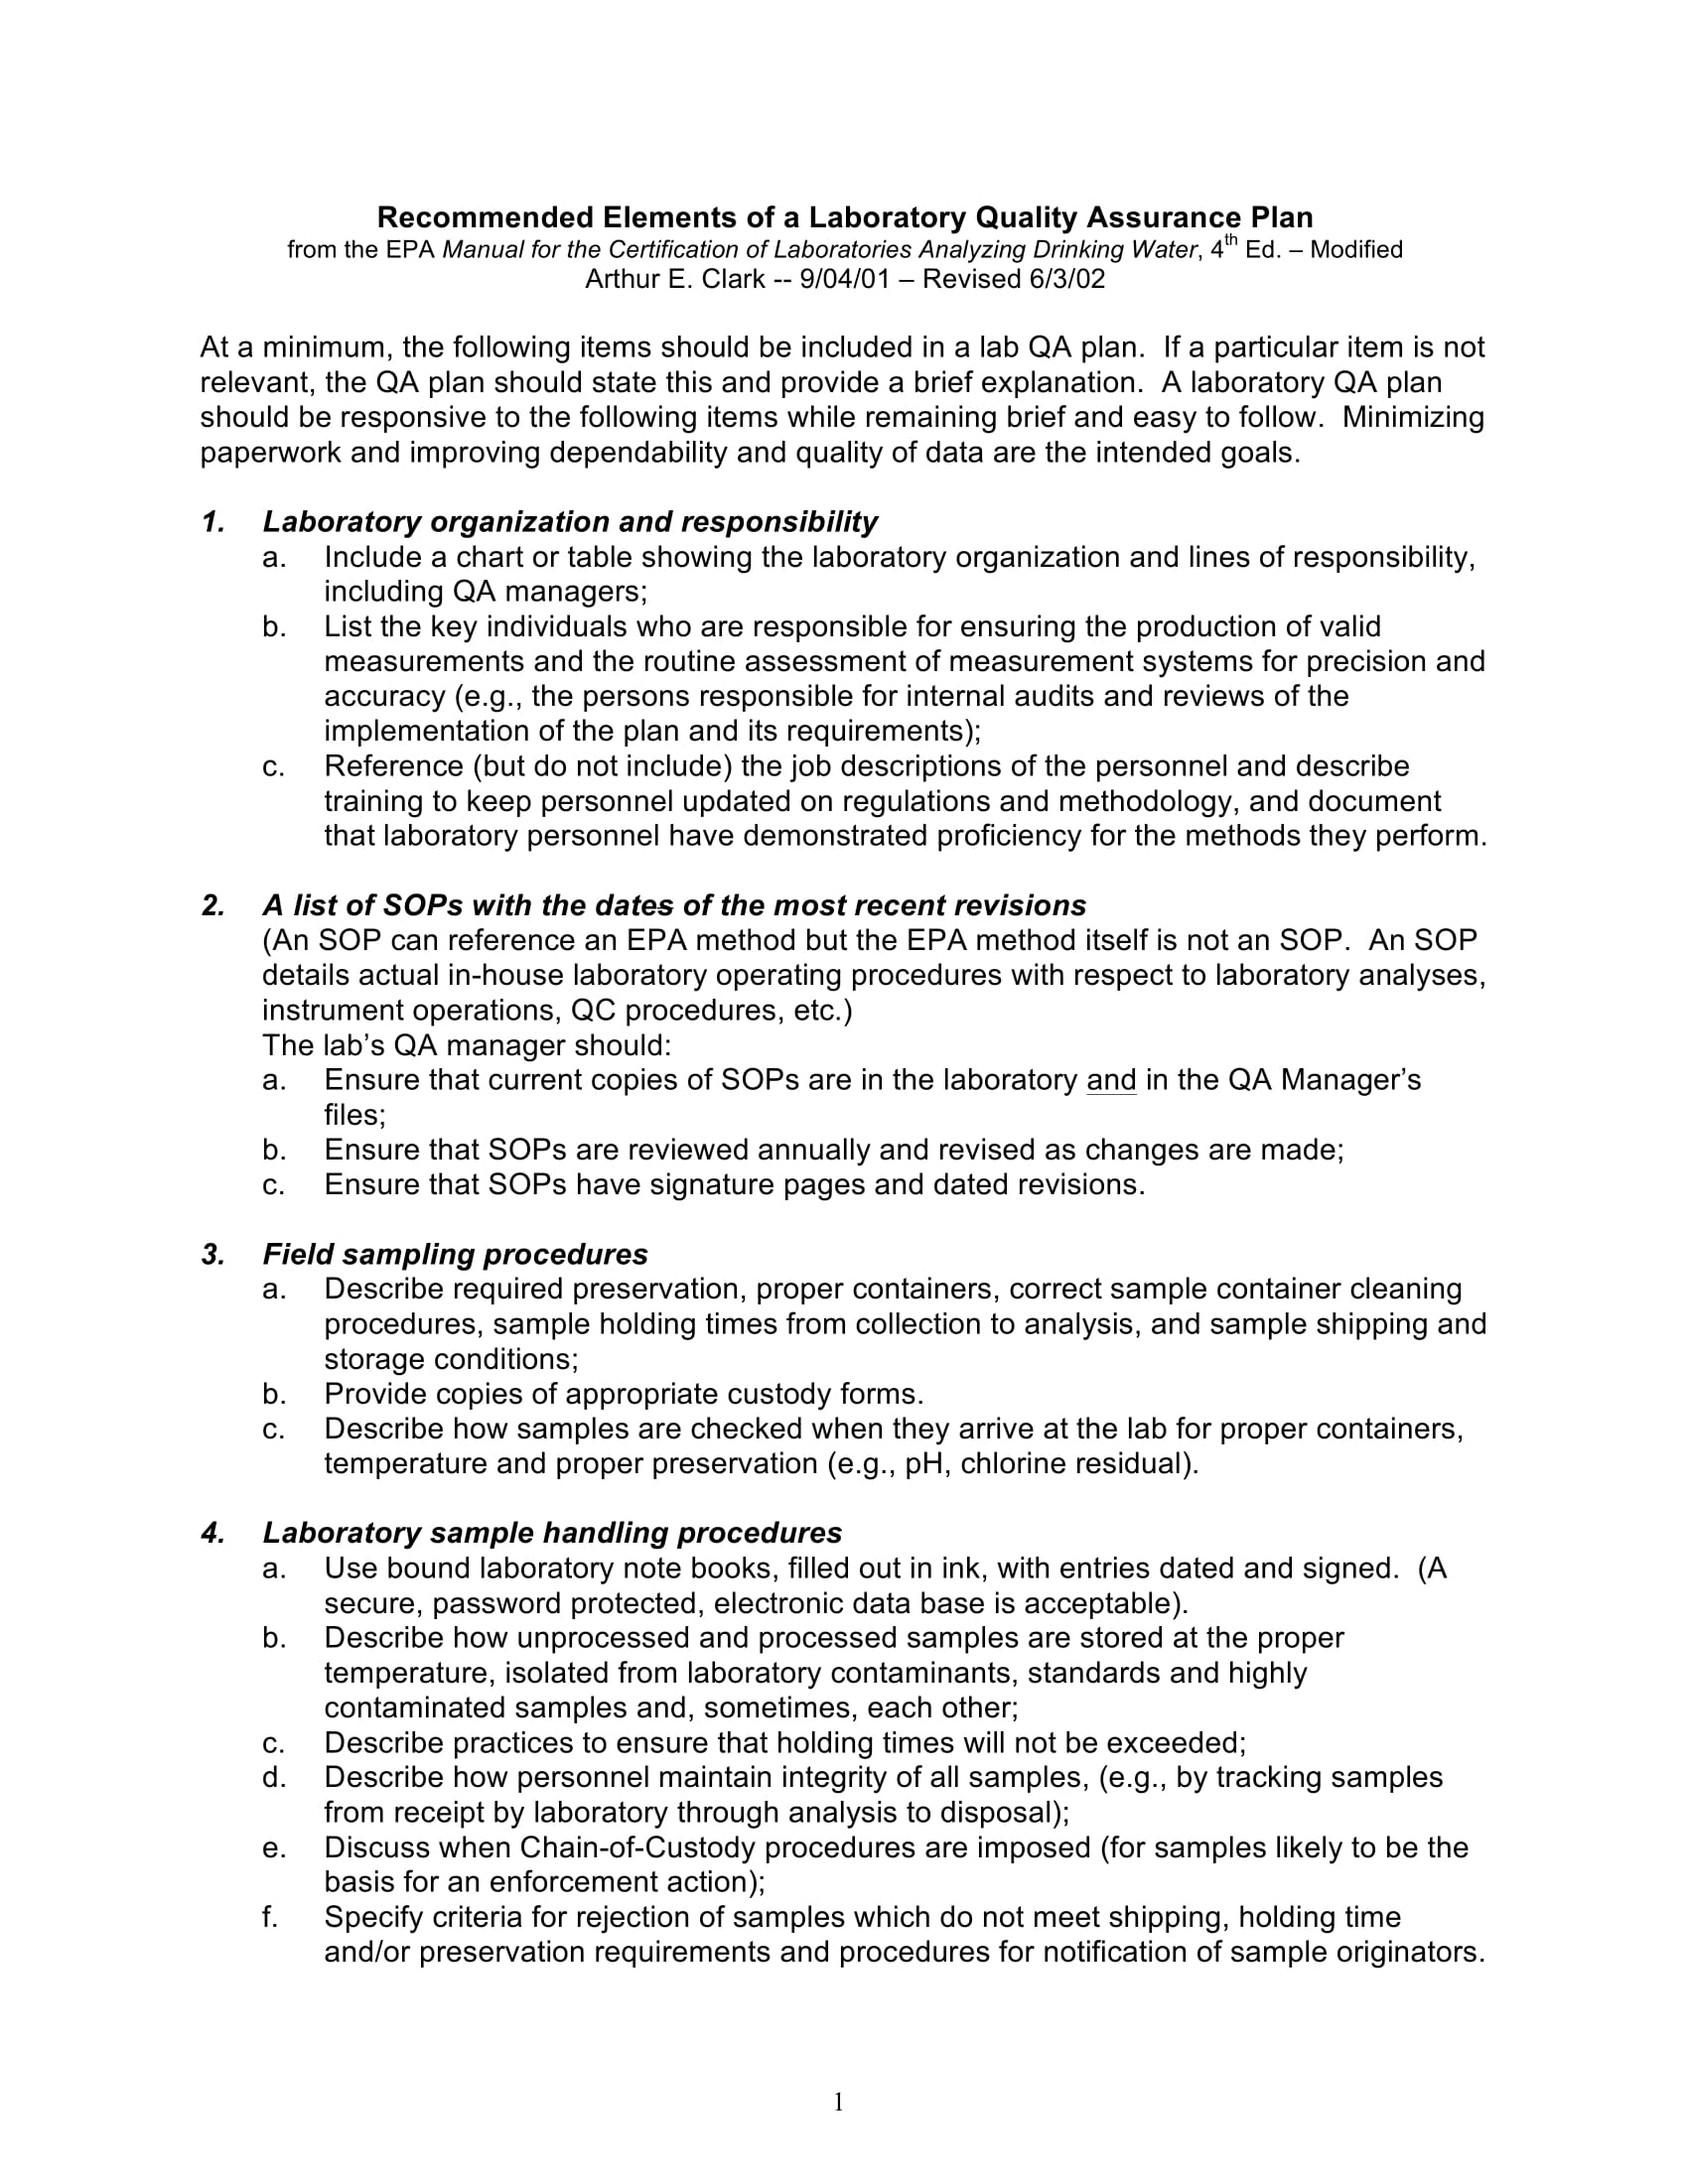 laboratory quality assurance plan elements example 1